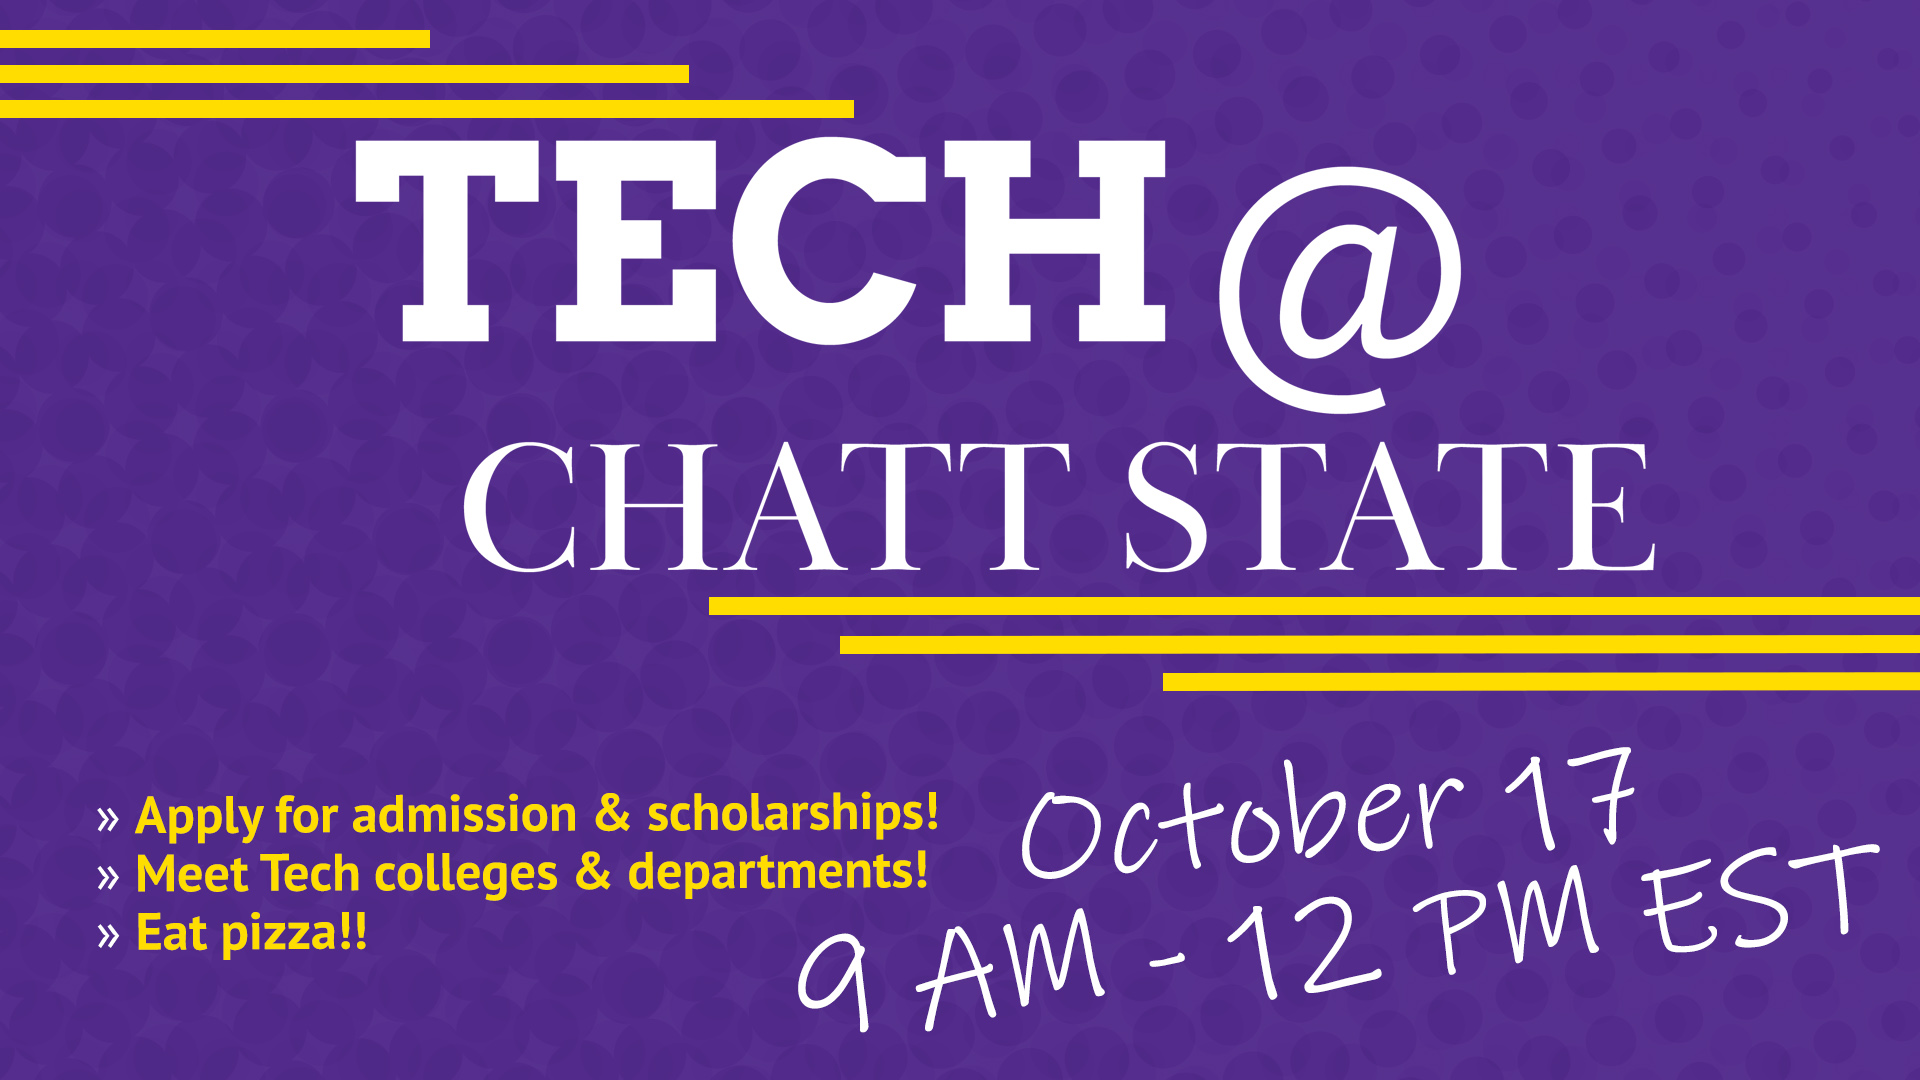 Tennessee Tech is visiting  ChattState on October 17 from 9:00am to 12:00pm